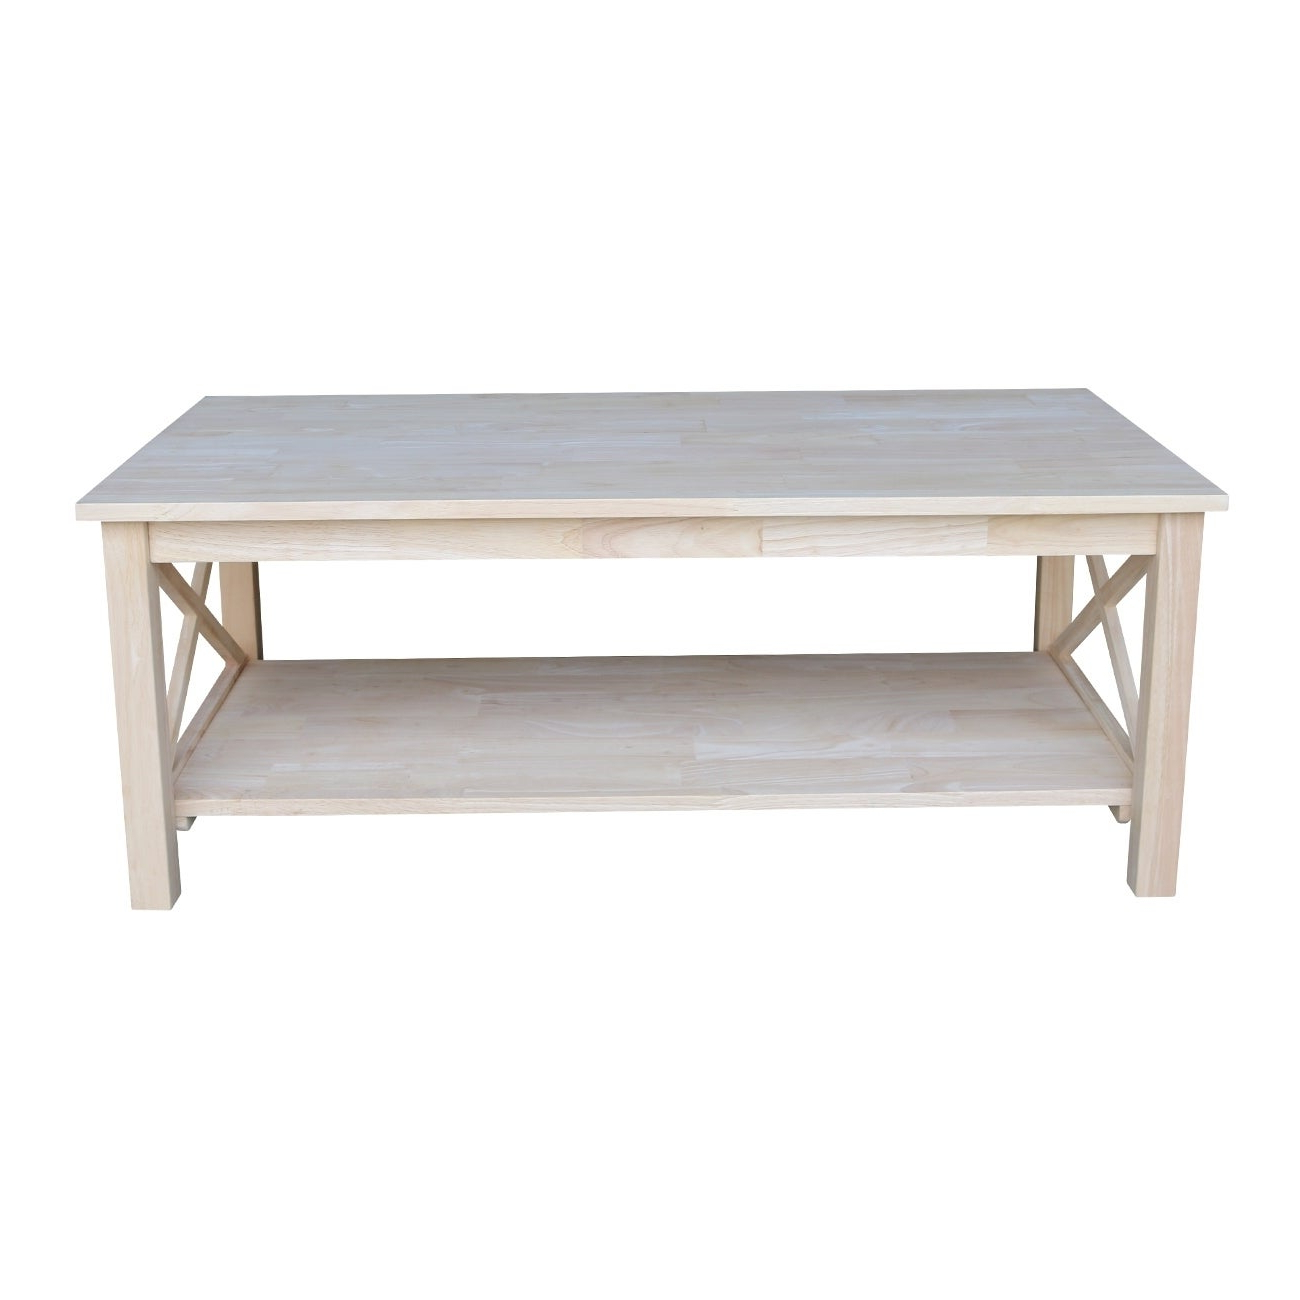 2019 Unfinished Solid Parawood Hampton Coffee Tables Inside Unfinished Solid Parawood Hampton Coffee Table (Gallery 4 of 20)